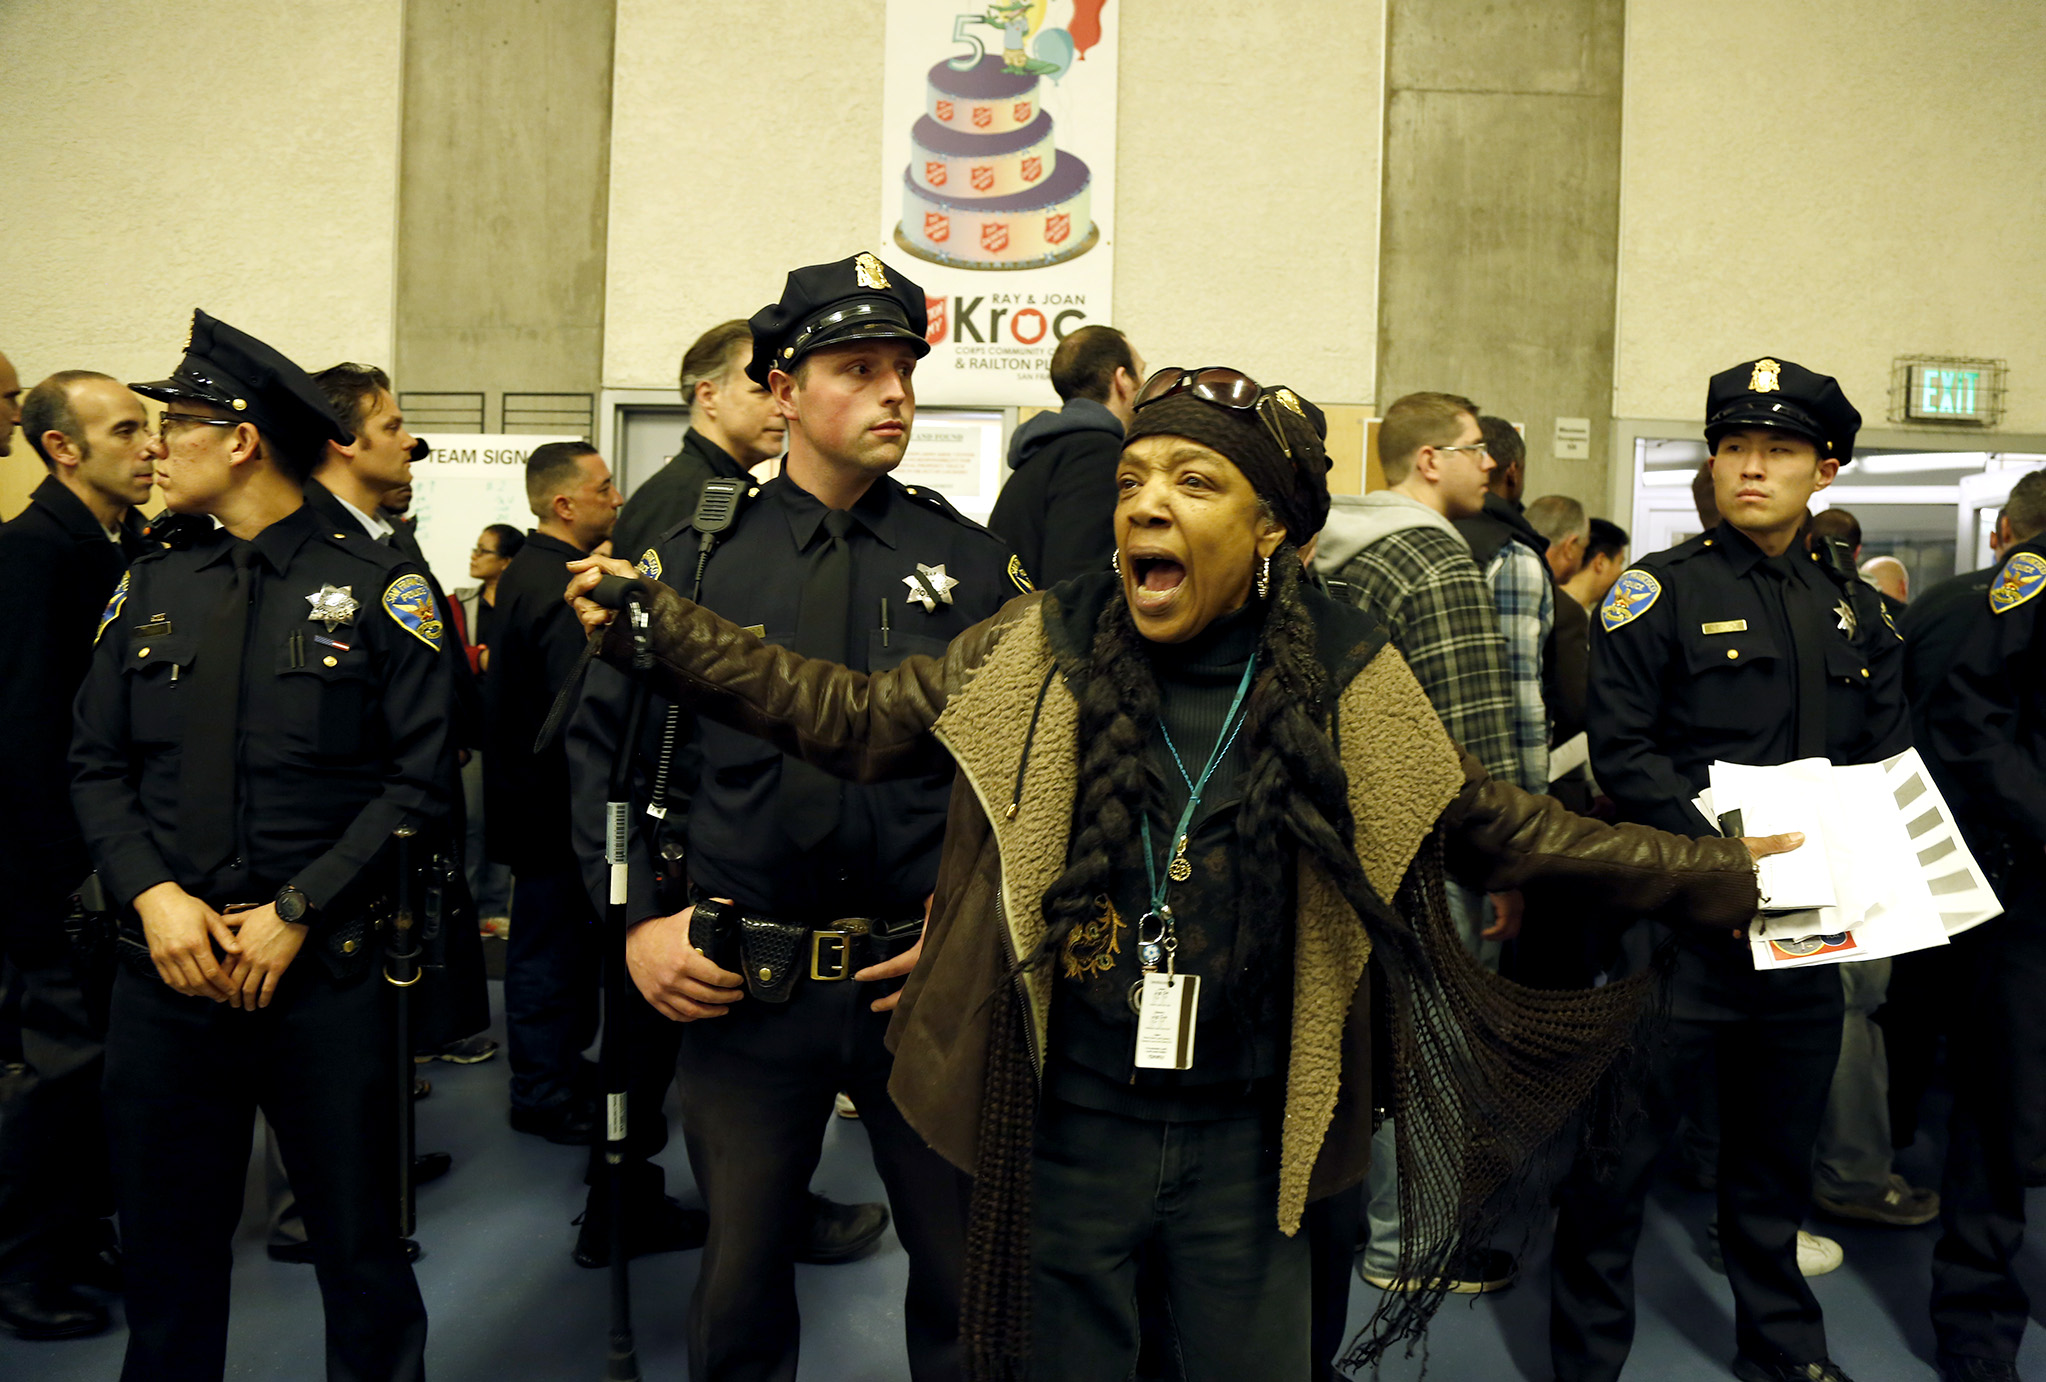 Sharen Hewitt demands justice for Mario Woods during public comment at the San Francisco Police Commission meeting at the Salvation Army Kroc Center on Jan. 20 in San Francisco. Photo Emma Marie Chiang